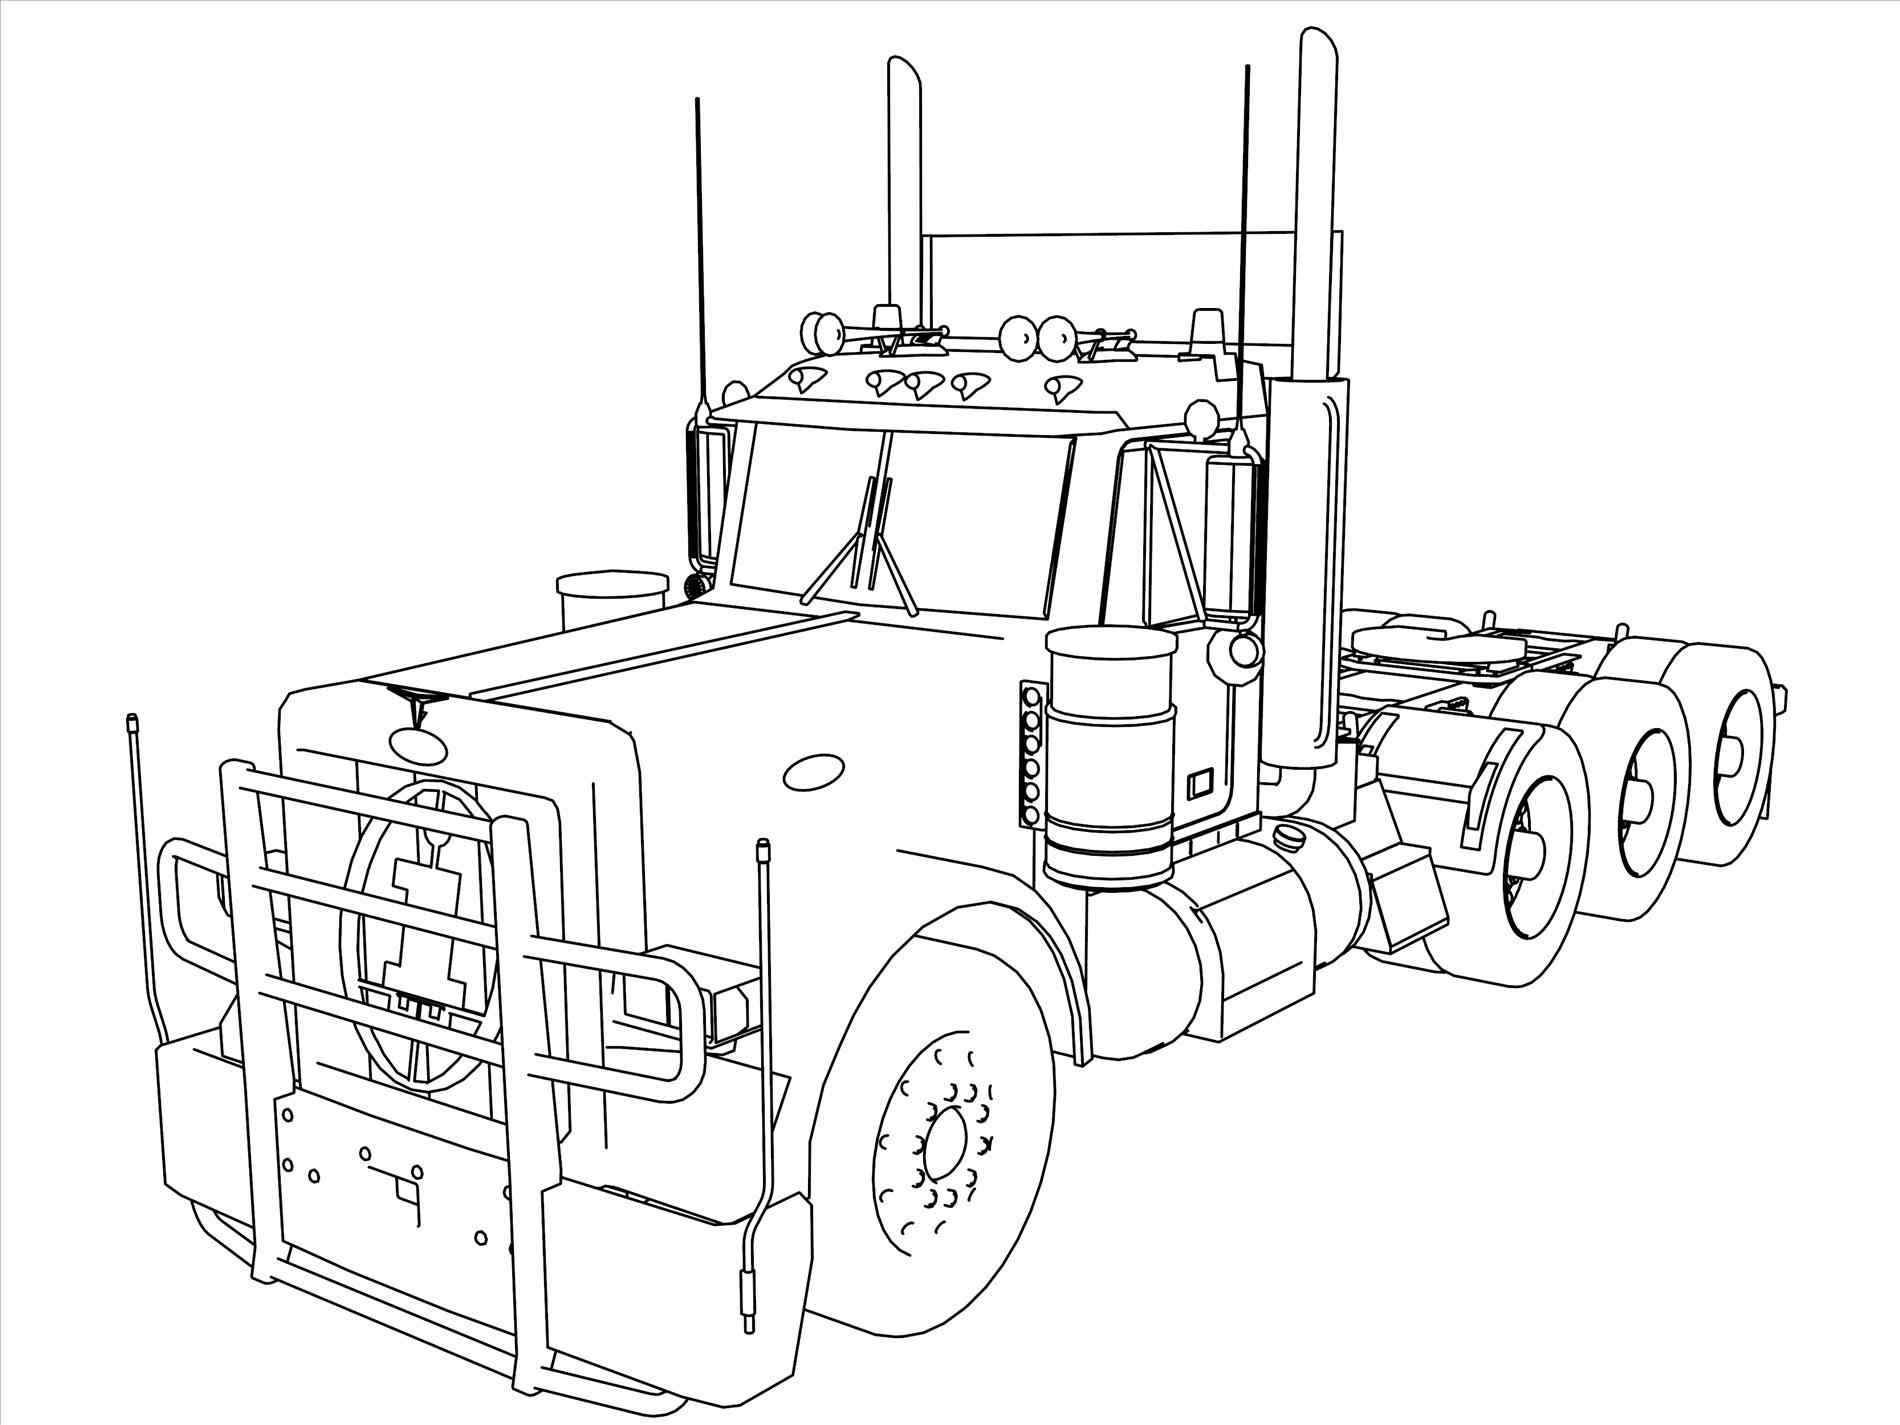 Wiring Diagram Kenworth W900 Furthermore Kenworth T800 Wiring